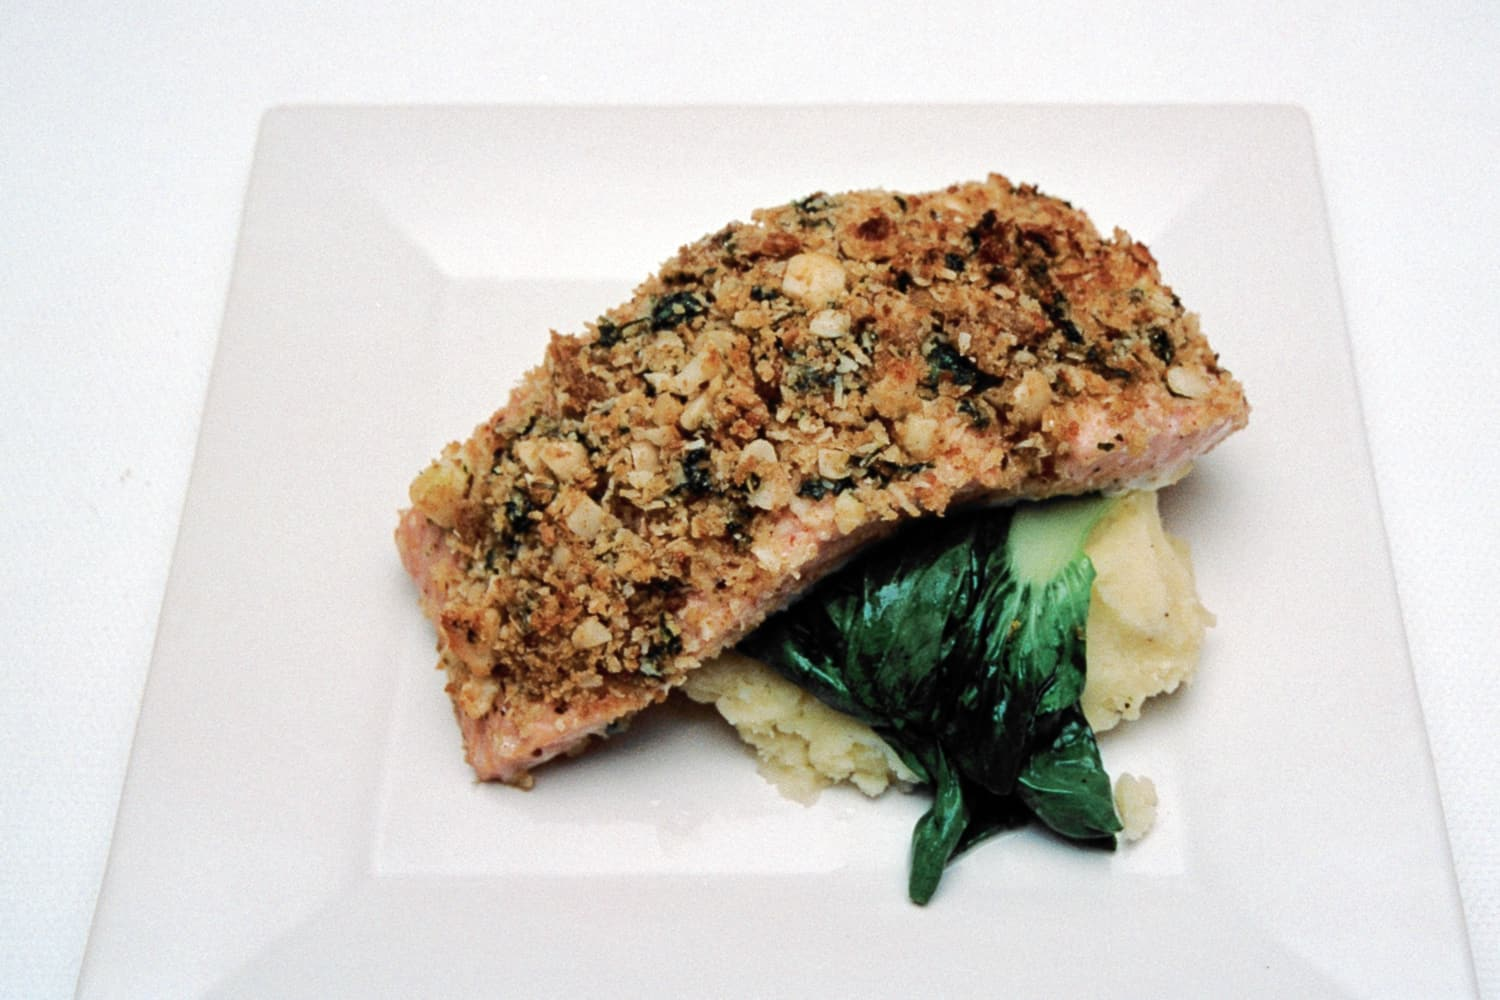 macadamia and coconut crusted salmon fillets on pak choi. Black Bedroom Furniture Sets. Home Design Ideas